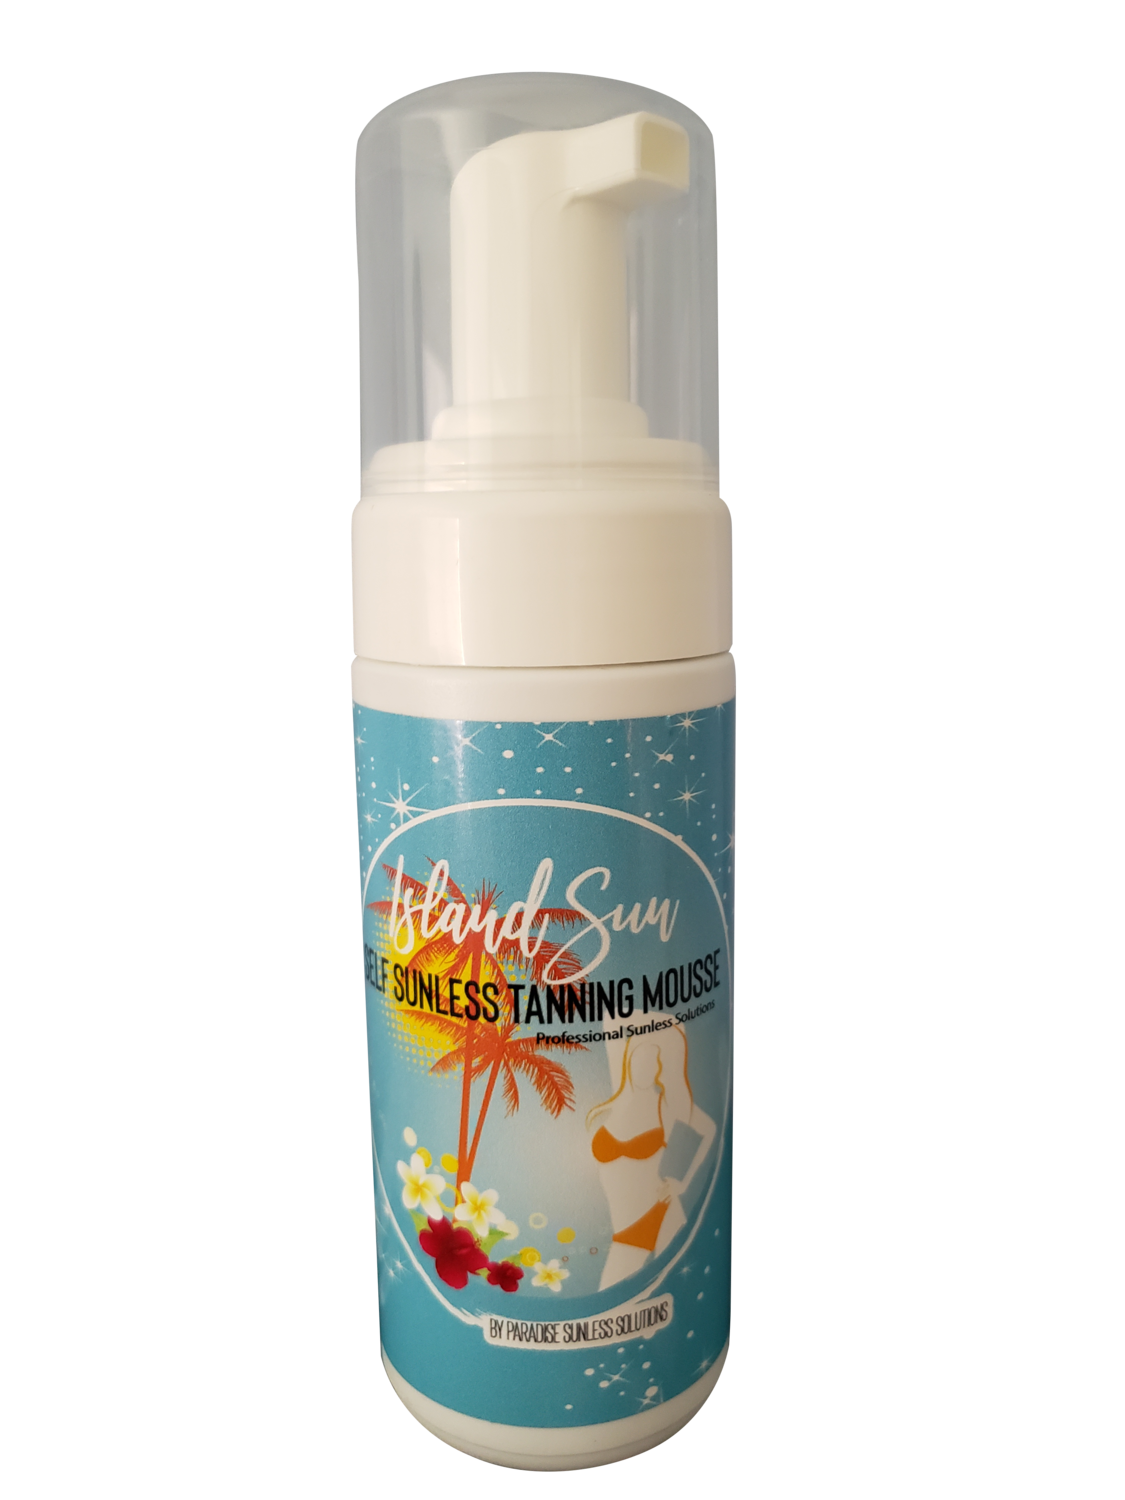 Island Sun Self Tanning Mousse 4.2 oz